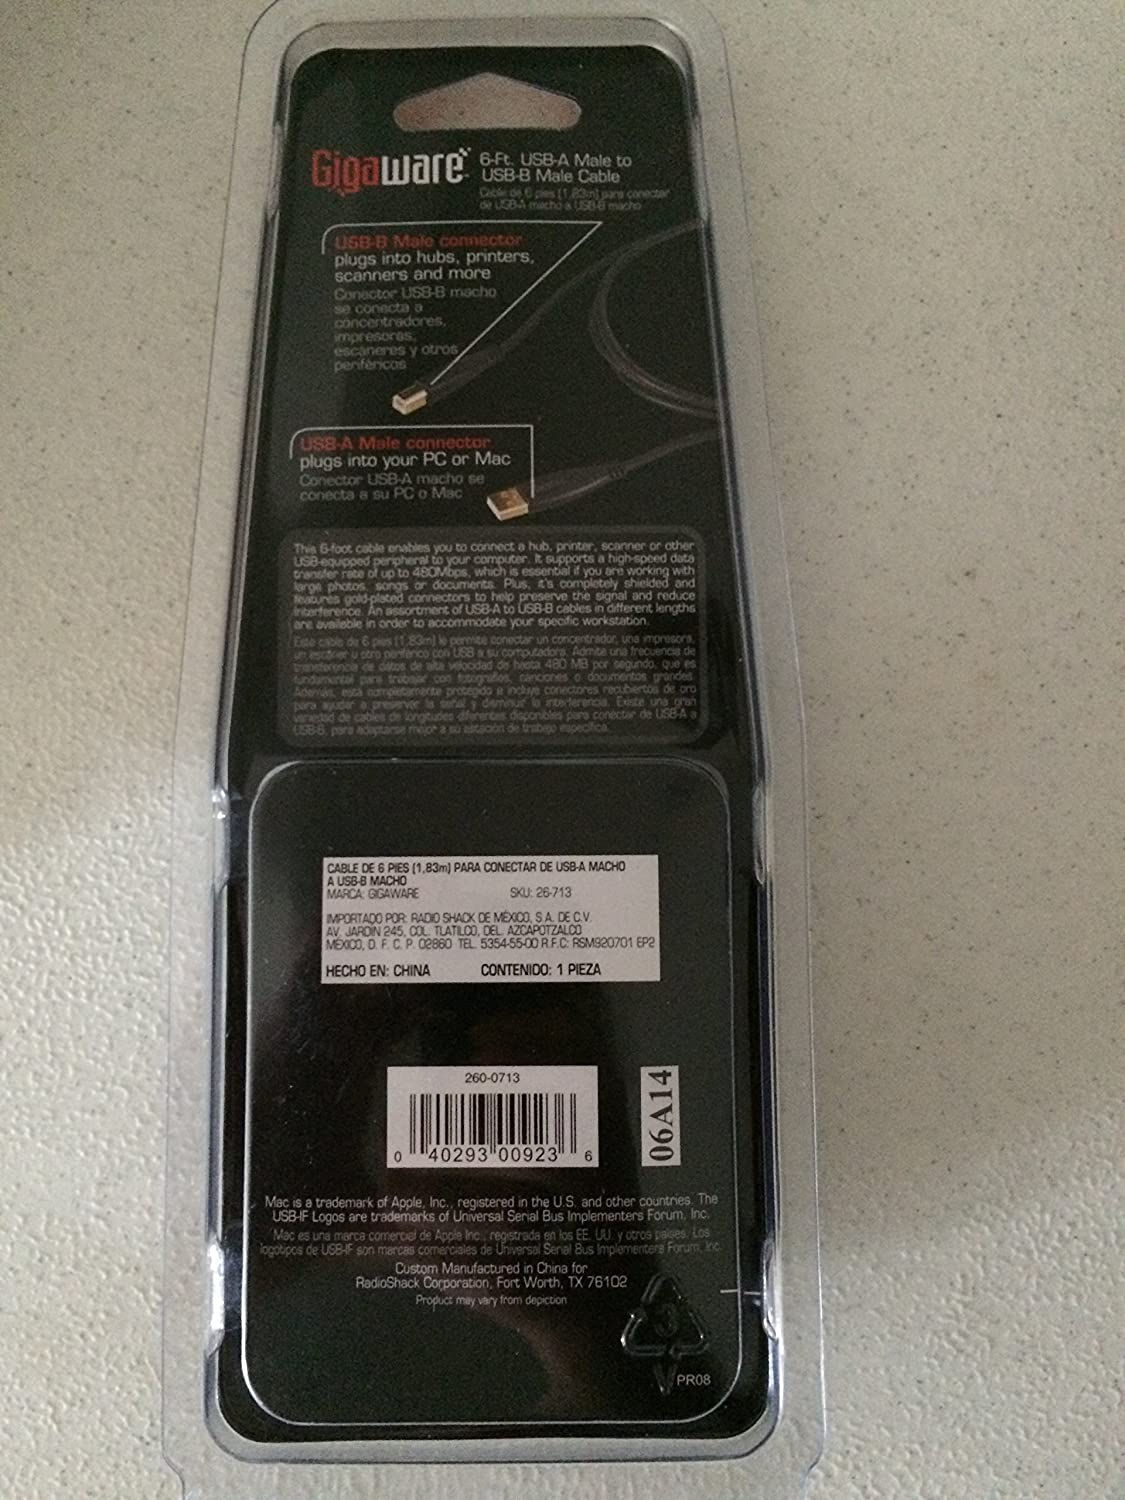 Giga Ware 26-713 6-Ft USB A Male To USB-B Male Cable